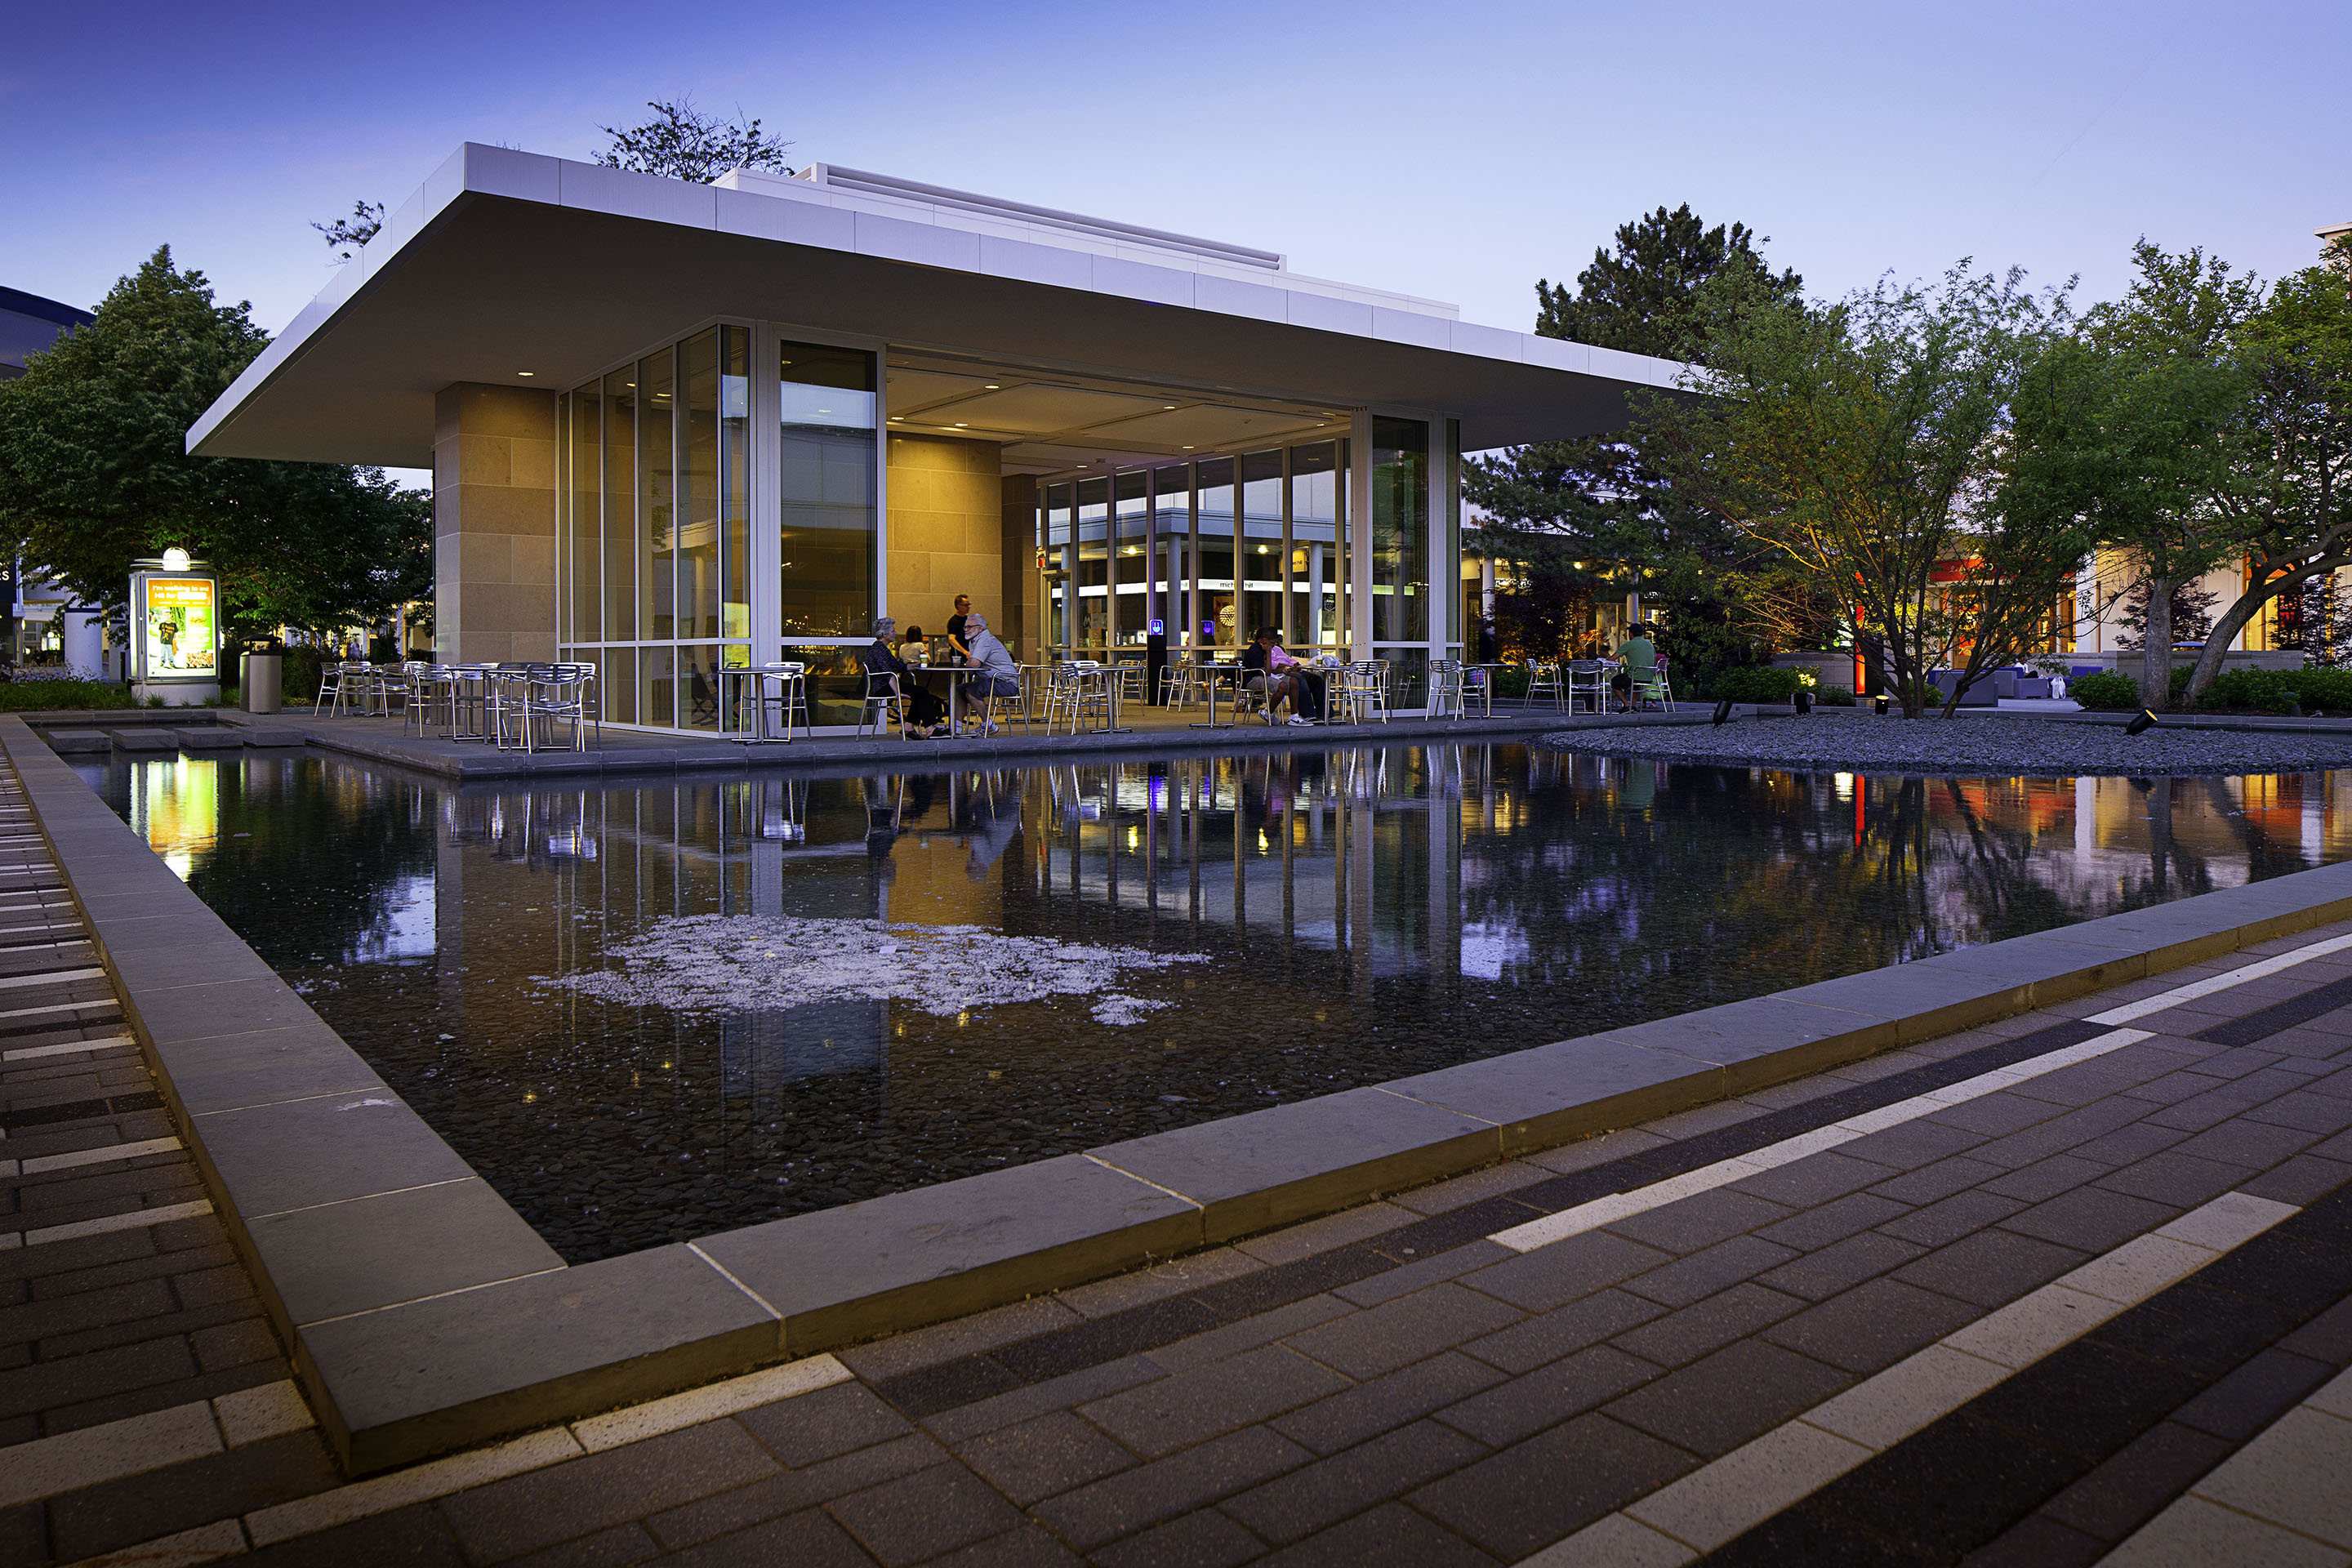 An outdoor seating area surrounded by a decorative pond is a popular spot for visitors at Oakbrook Center